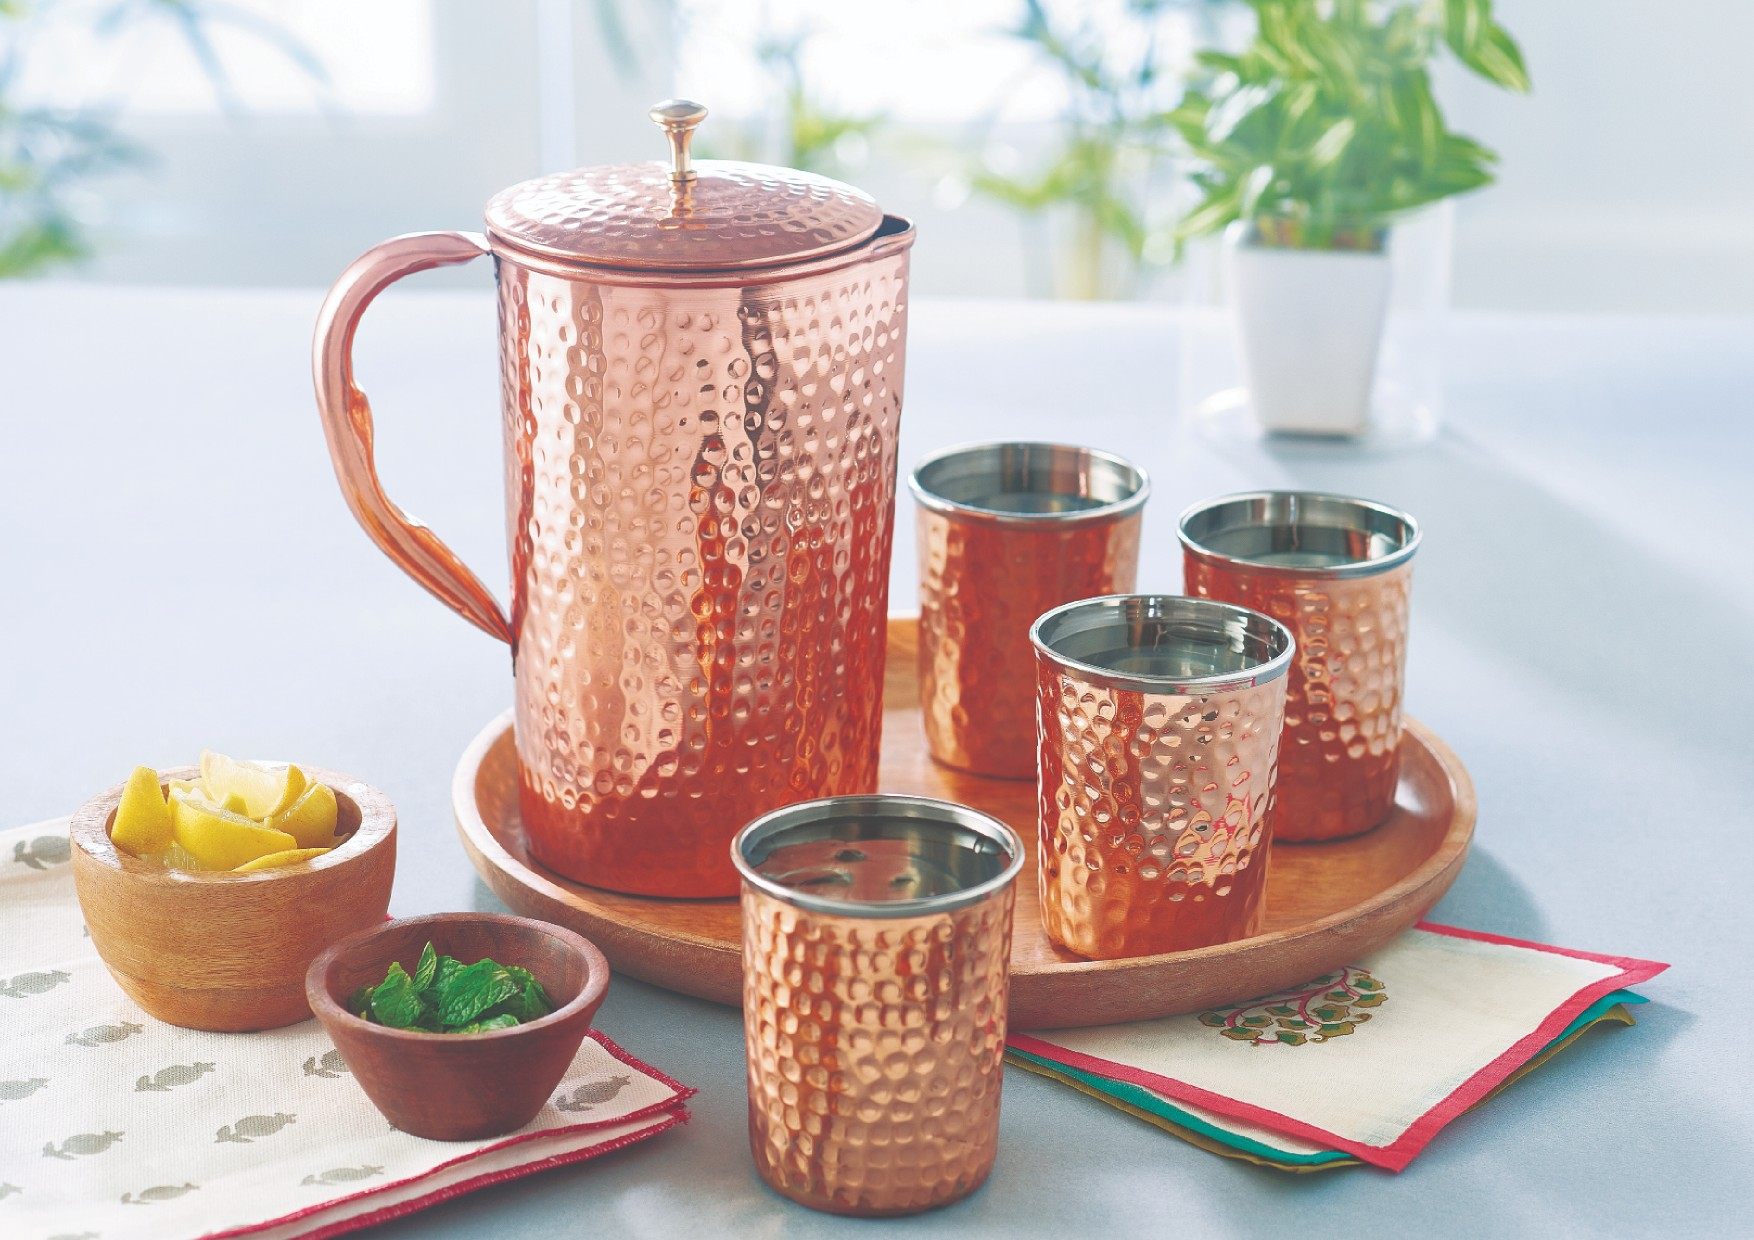 Songbird Copper Jug Copper Serving Sets in Copper Colour by Songbird